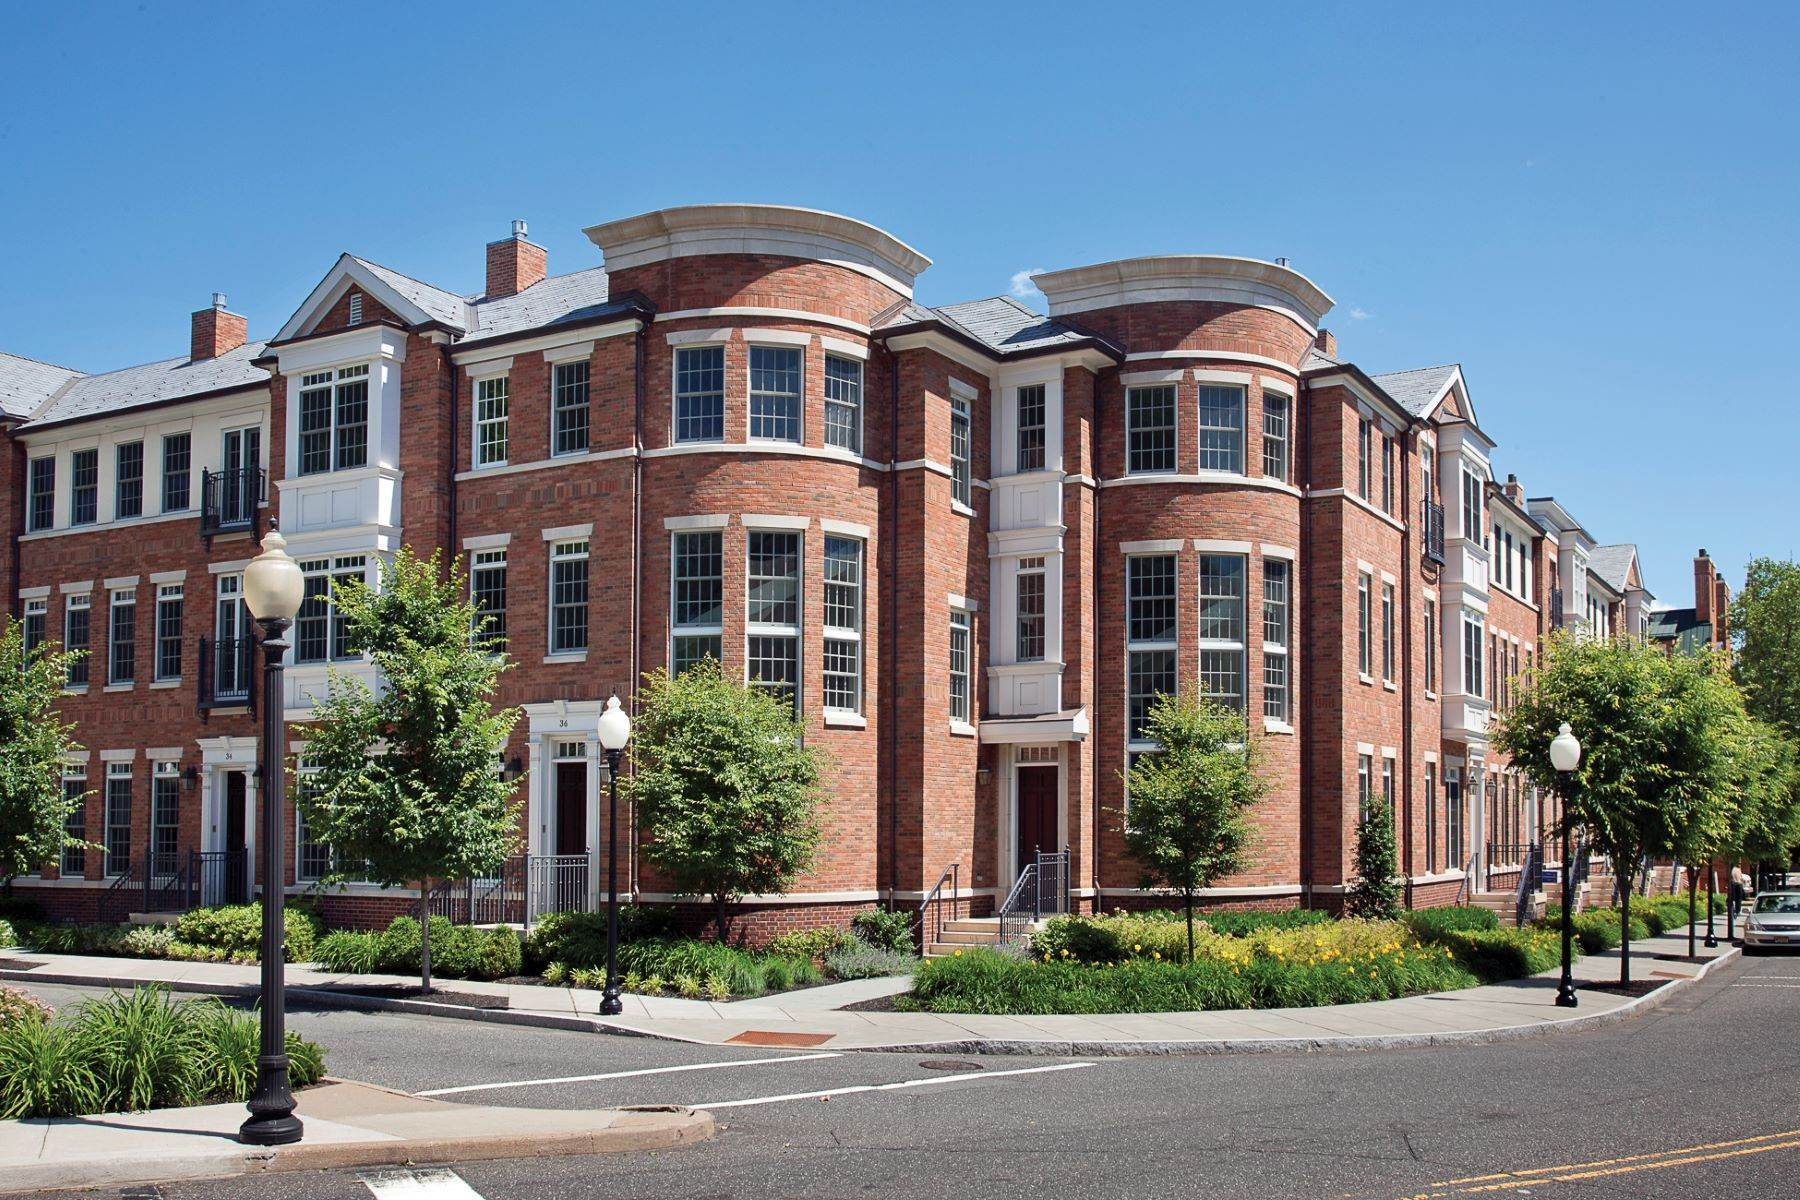 townhouses for Sale at Luxury Townhome Living at its Finest 18 Paul Robeson Place, Princeton, New Jersey 08542 United States